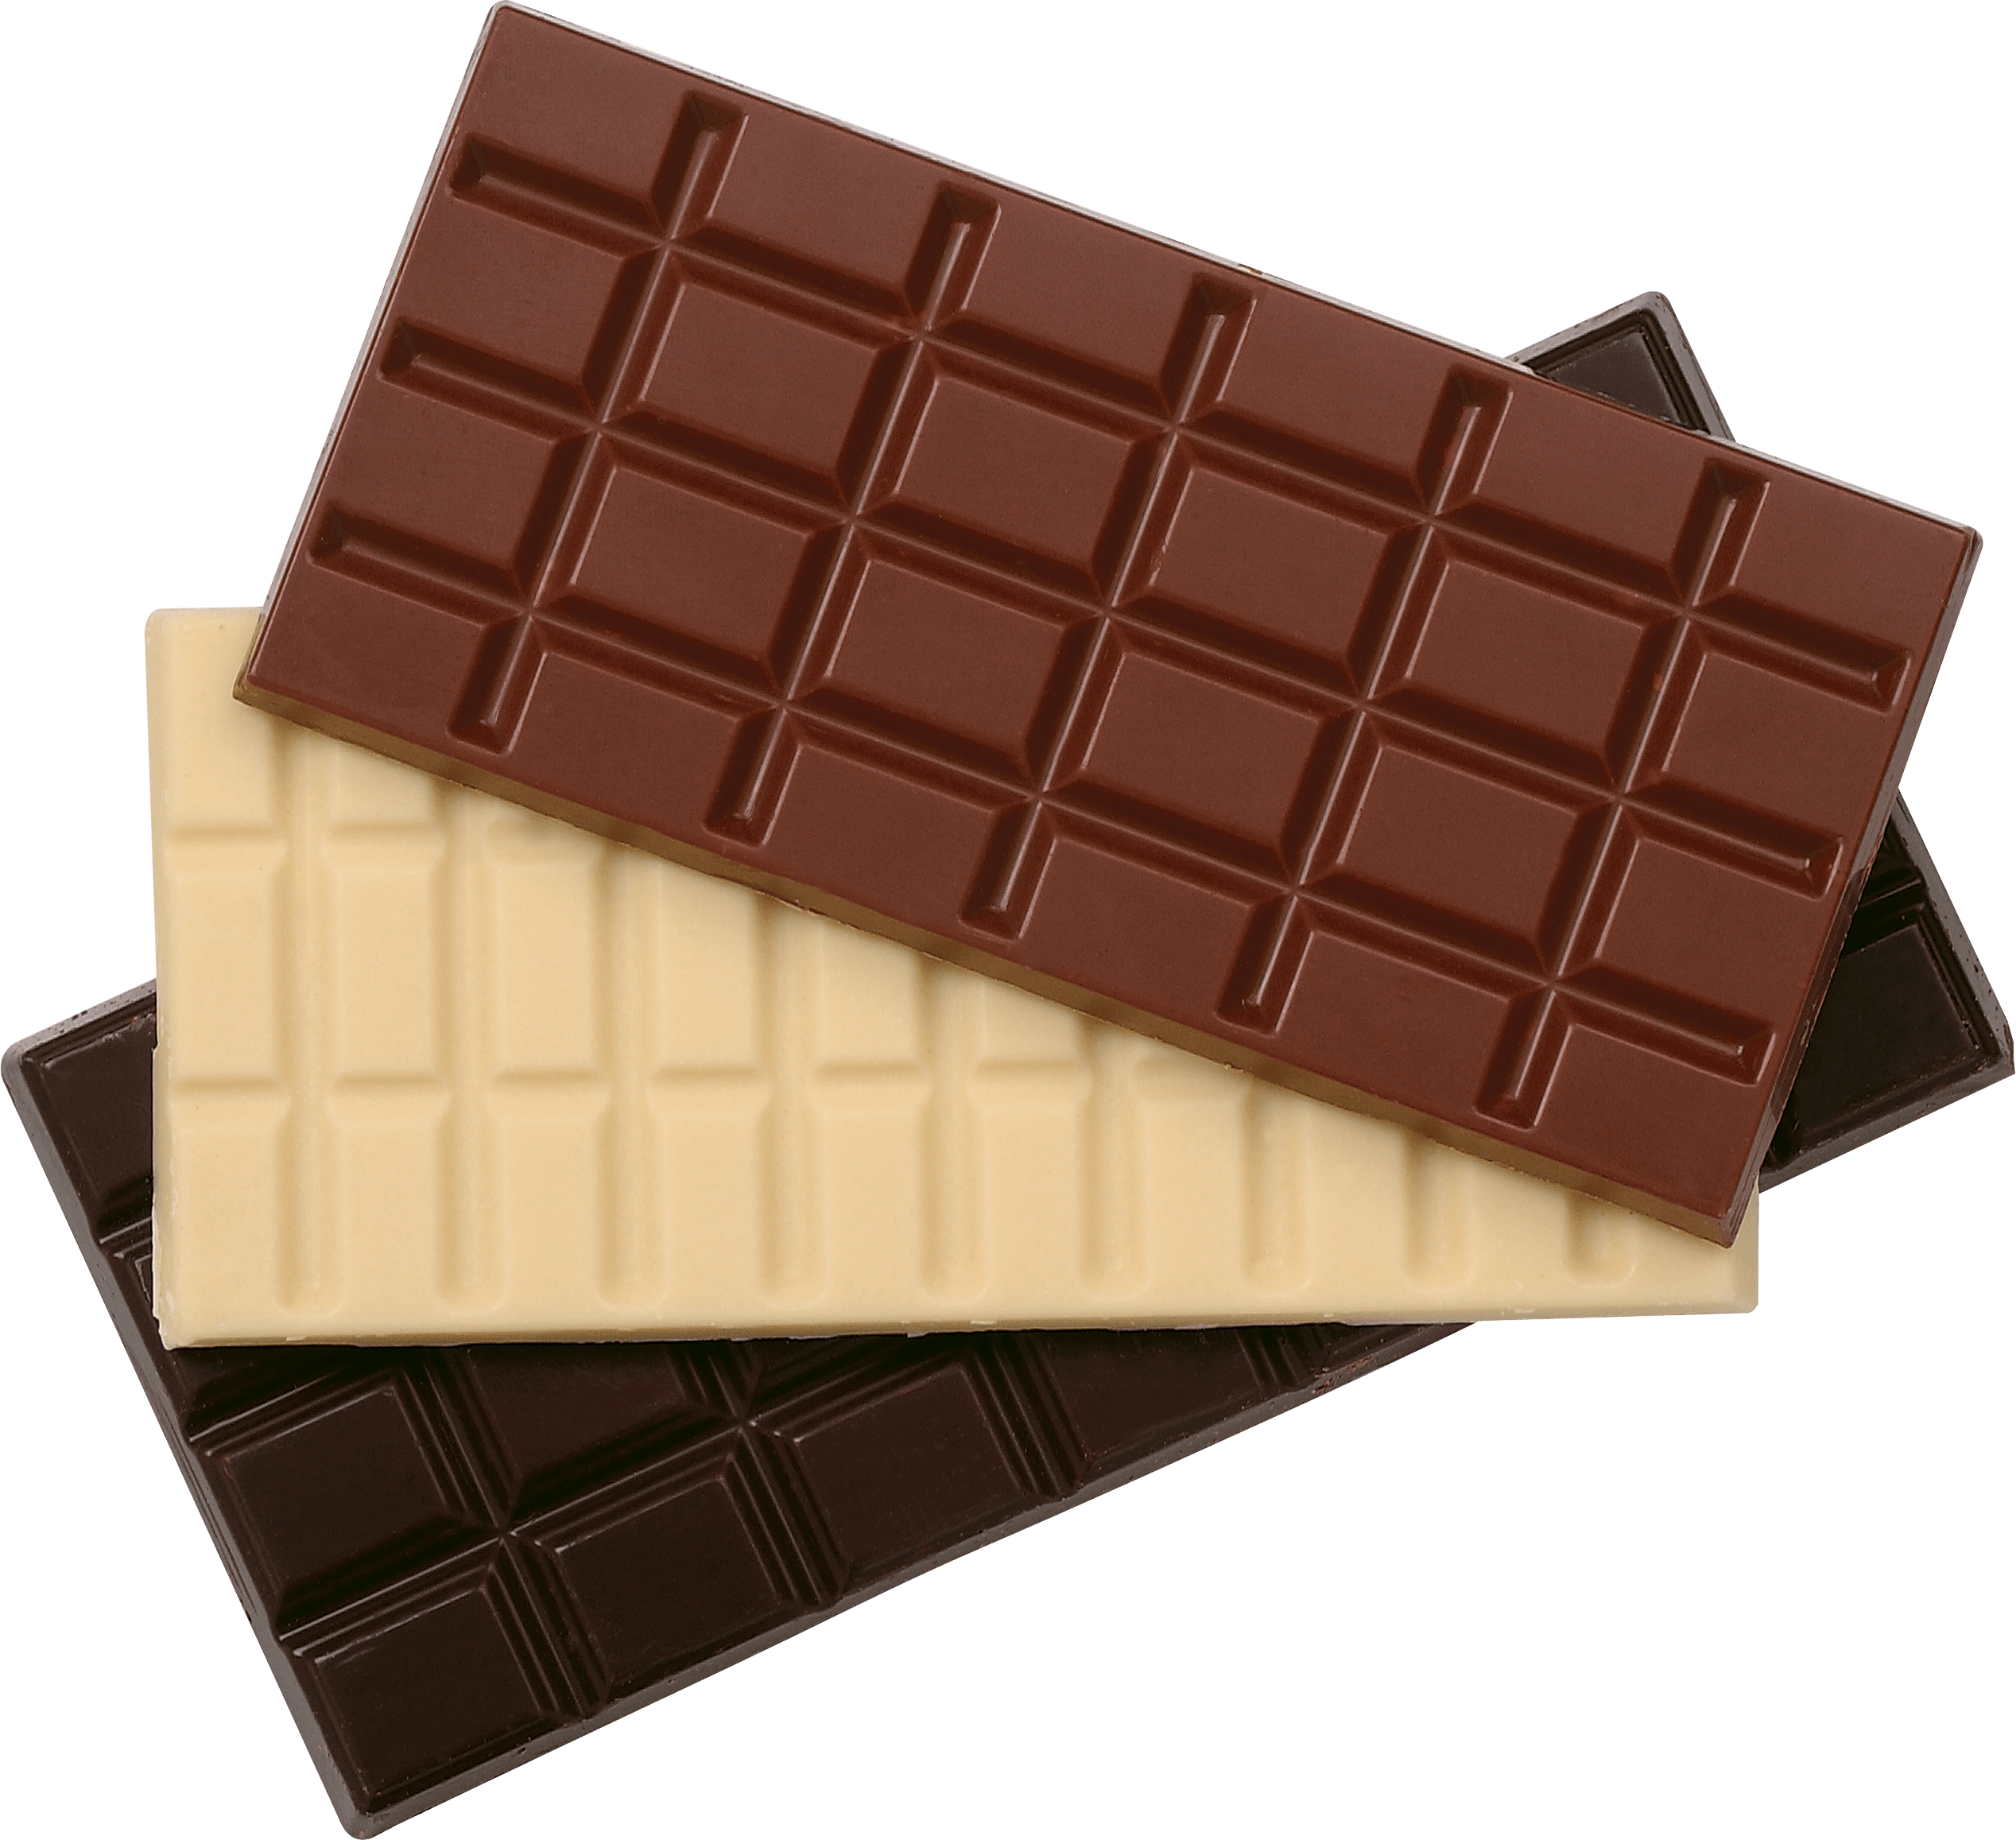 Chocolate Bars Png Image PNG Image